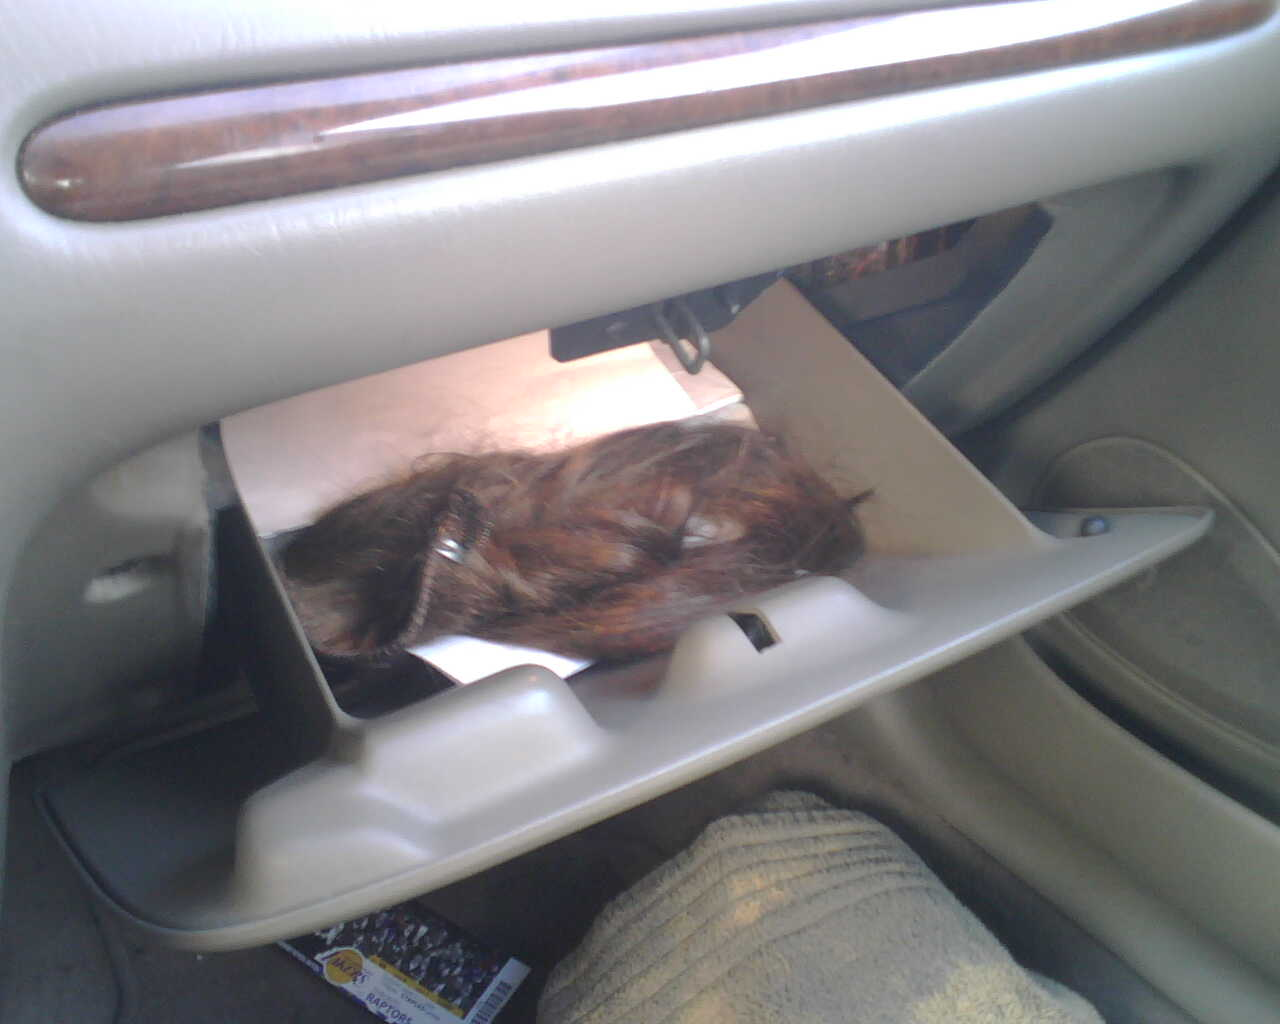 emergency extensions